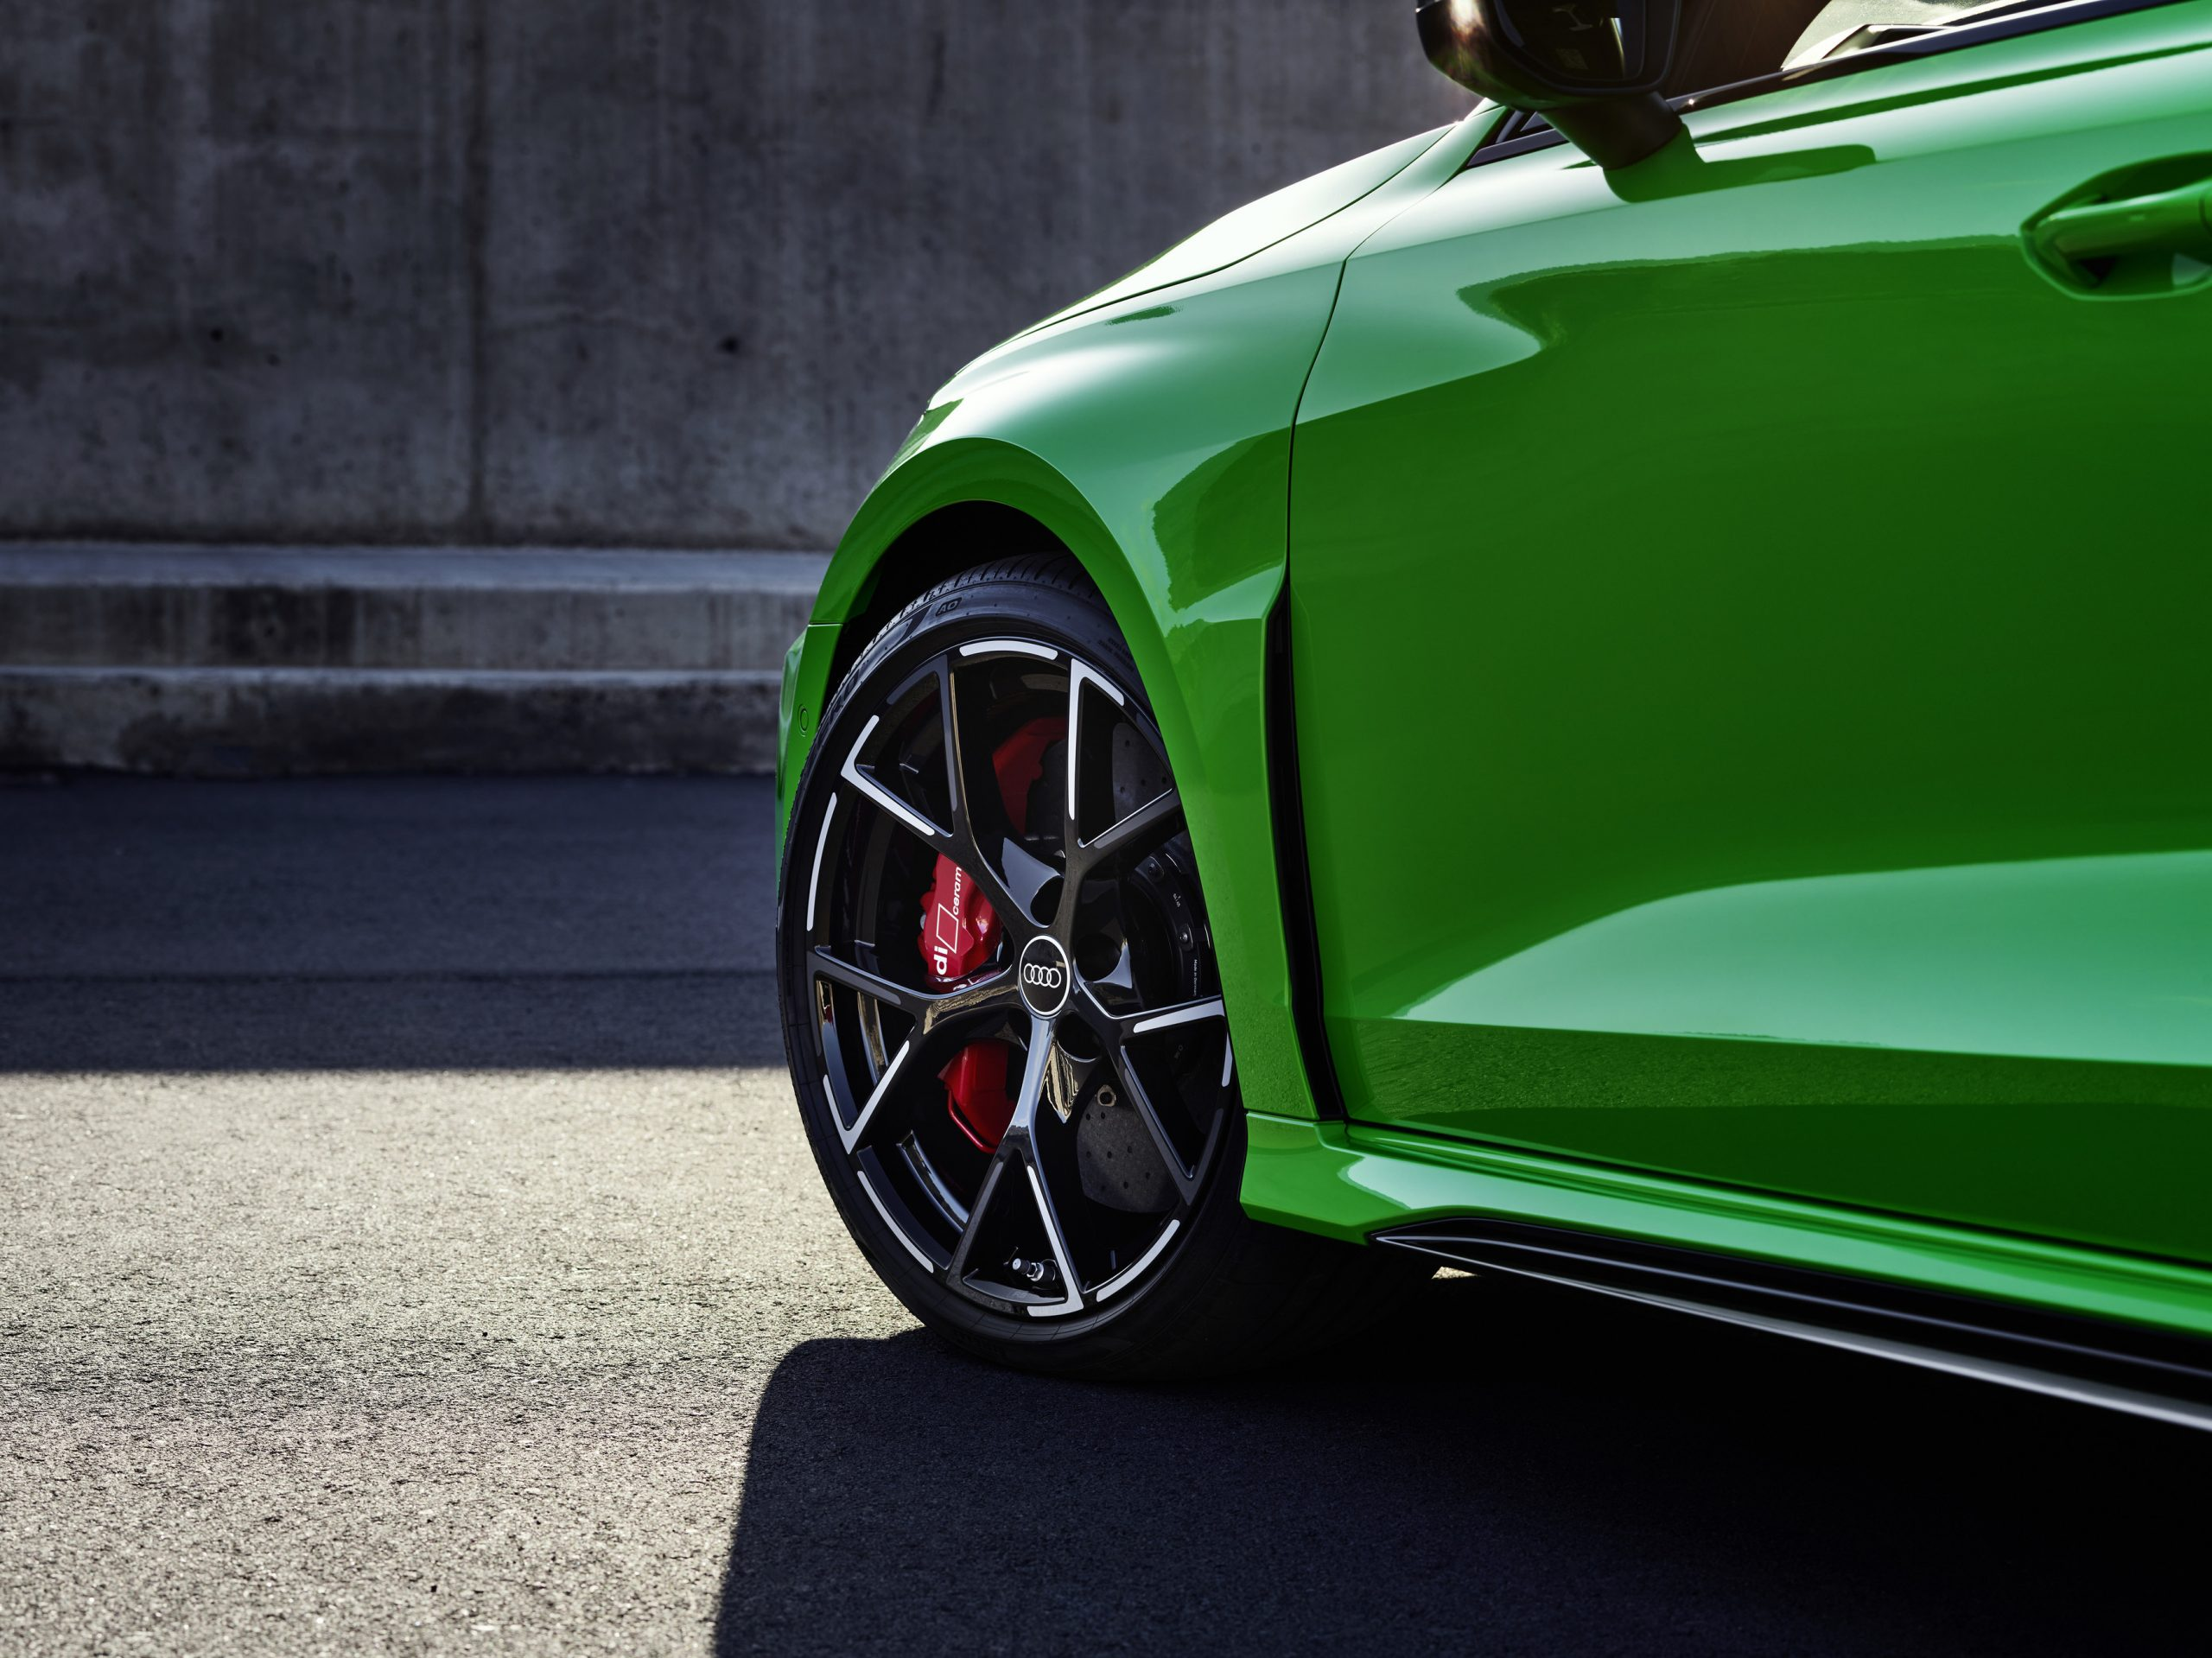 2022 audi rs 3 front wheel